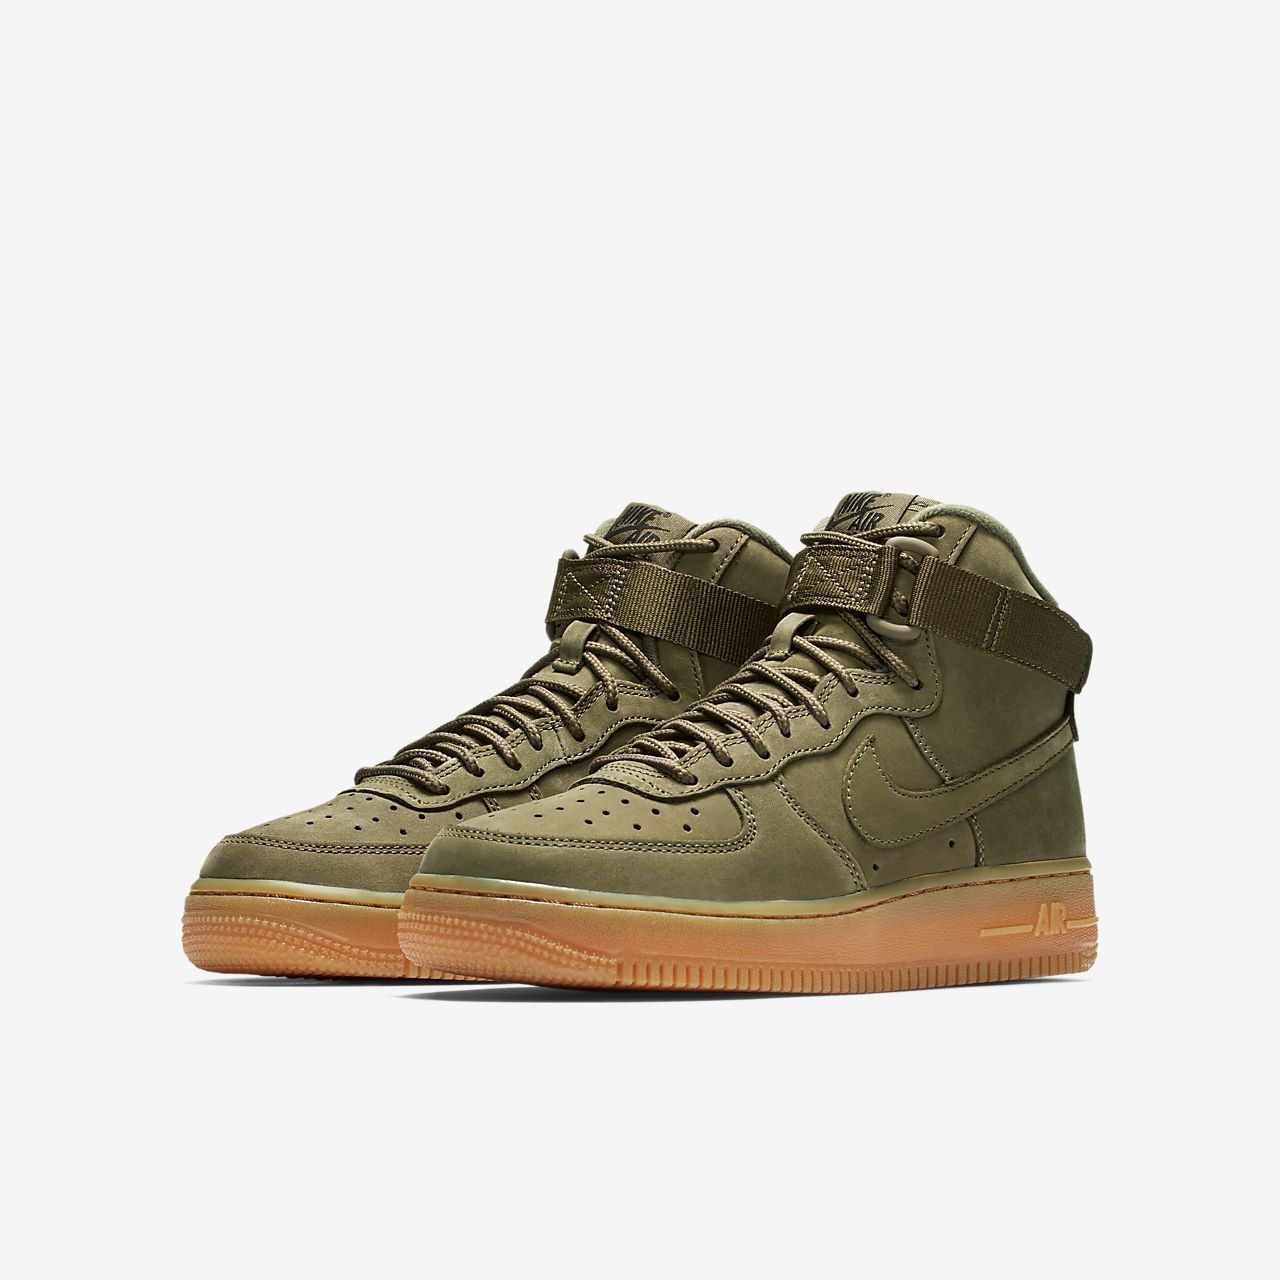 144effd855 ... get nike air force 1 high wb older kids shoe e0ad9 9e3ee